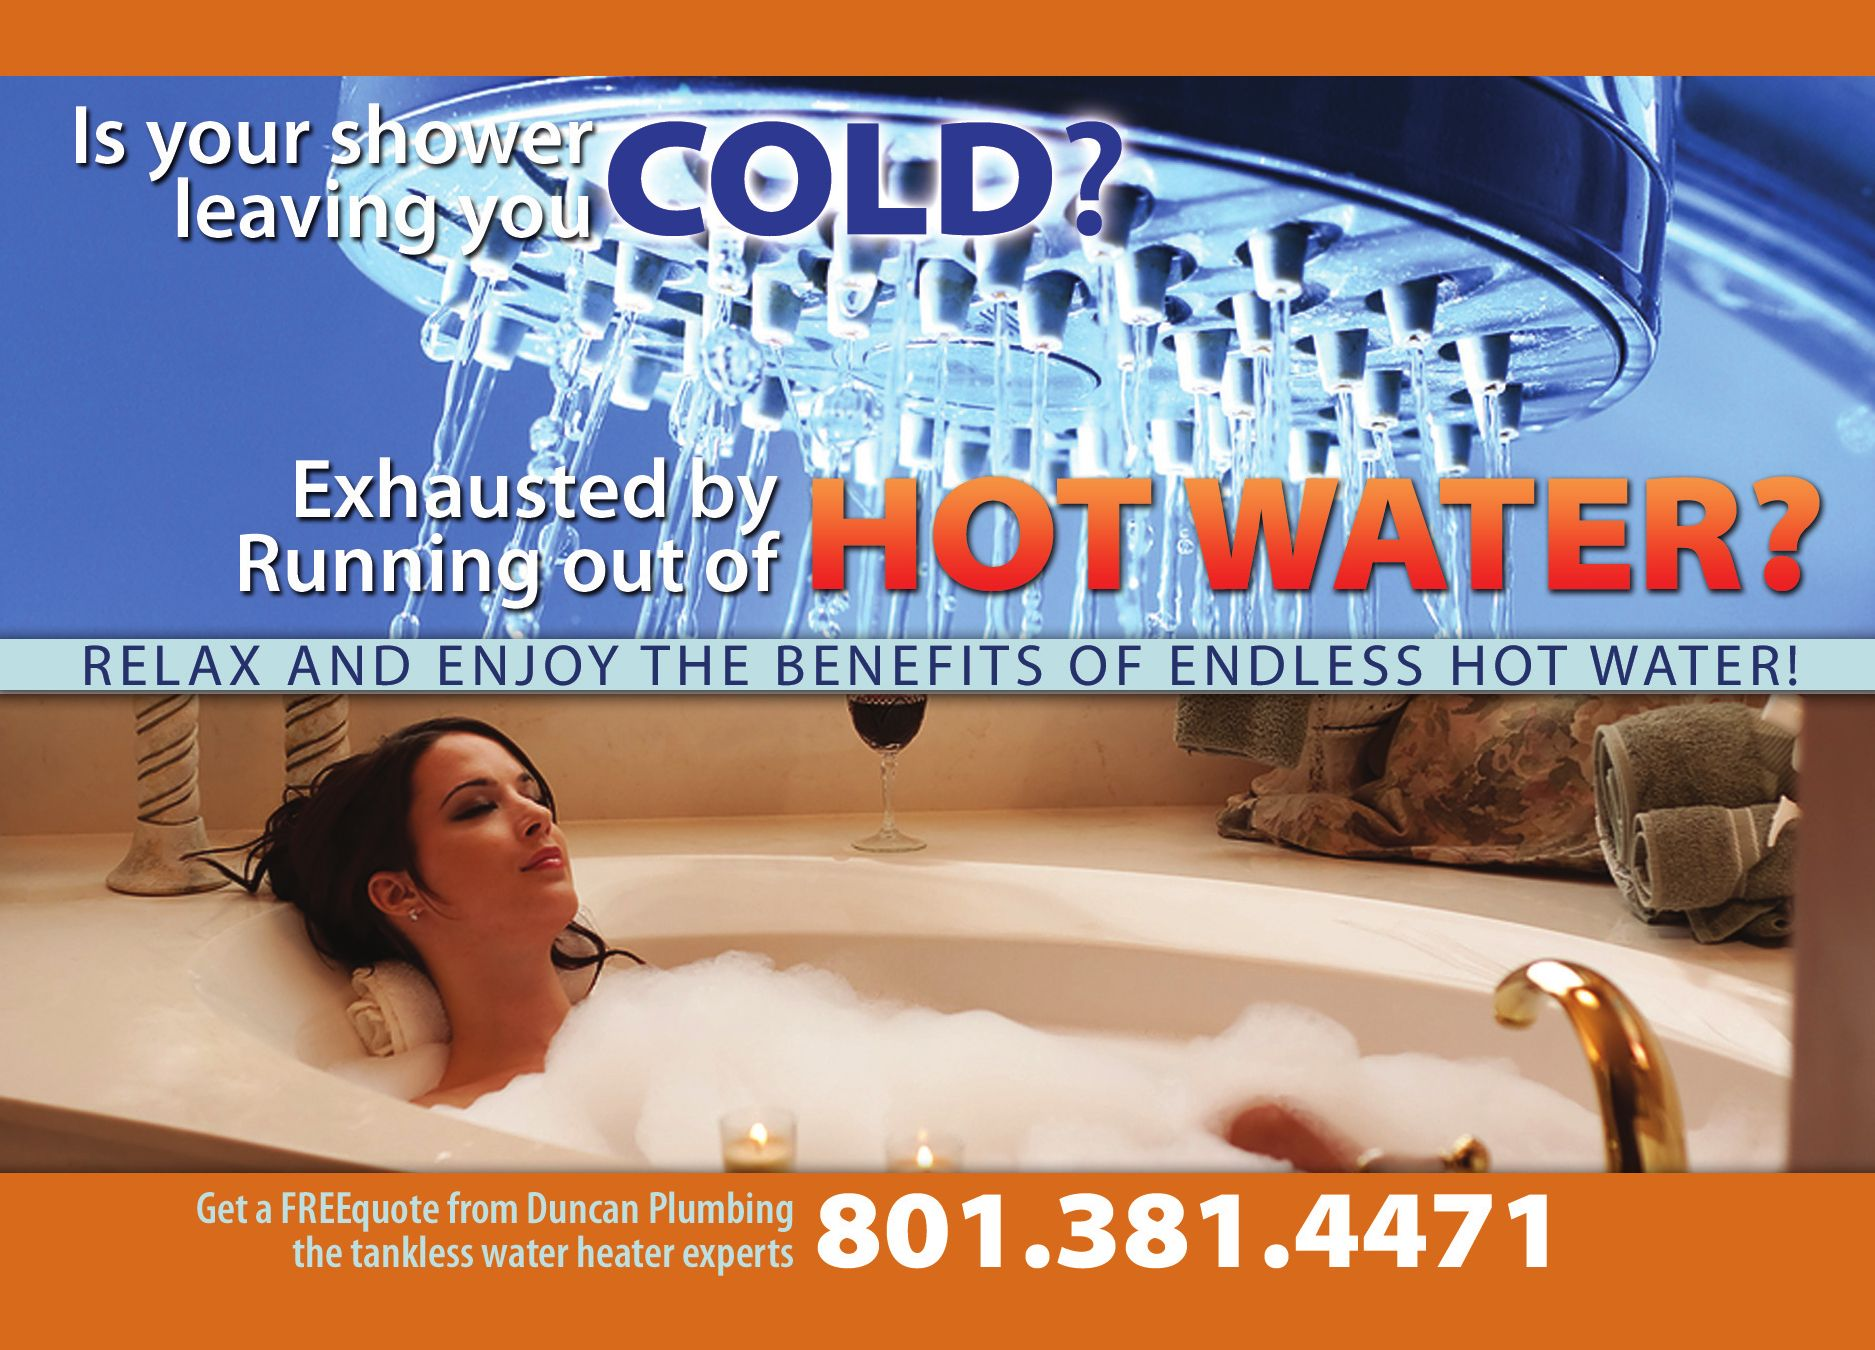 water in and coupons ellis waxahachie coupon call county freeservicecall free promotions tankless heater solutions duncan plumbing service off